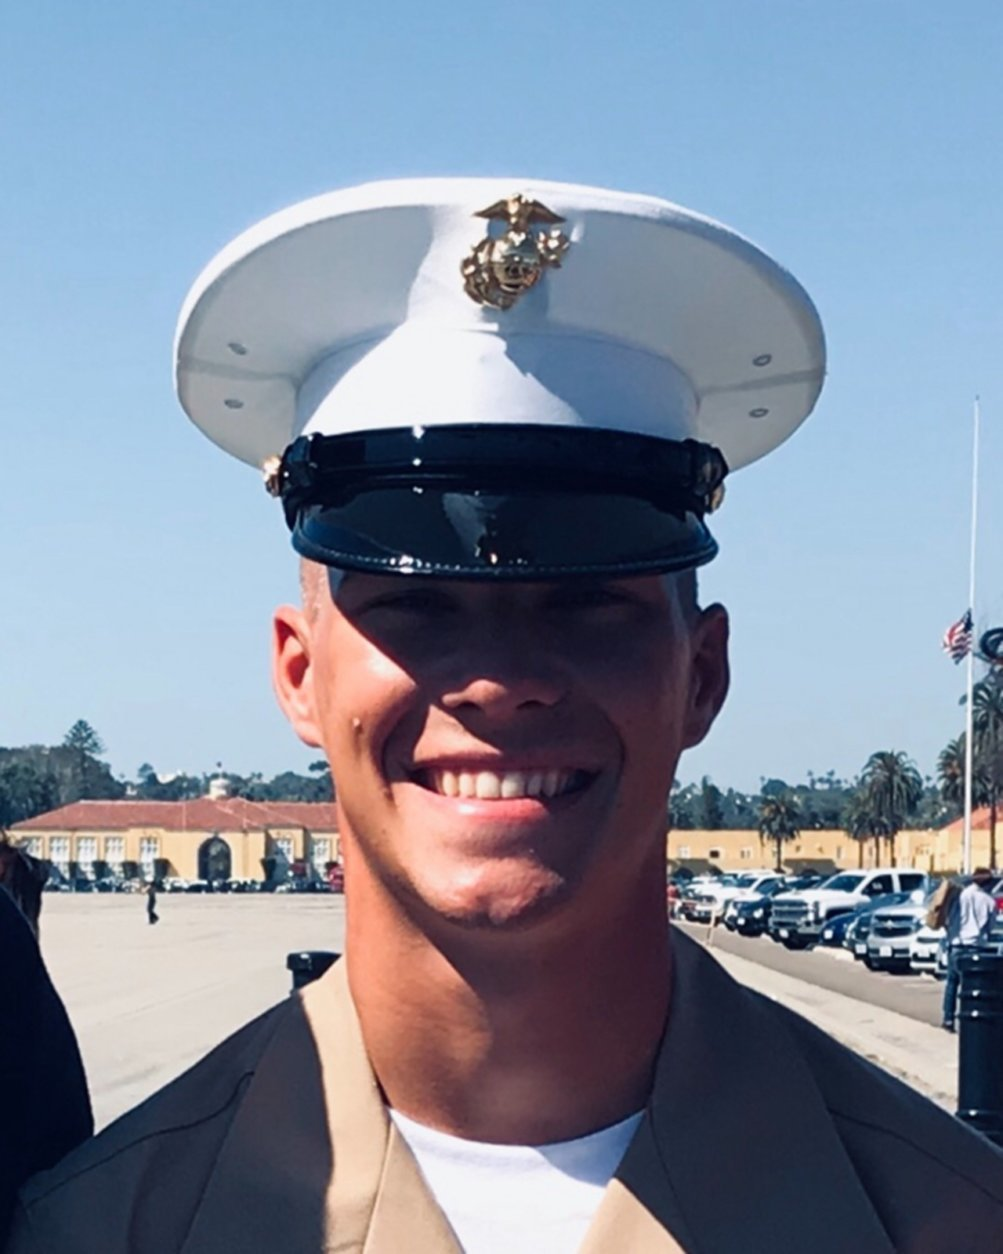 """This 2017 photo provided by Morgan Kuznia shows her brother Riley Kuznia at his Marine graduation ceremony in San Diego. The 20-year-old U.S. Marine from Minnesota was killed in a shooting at the Marine Barracks in Washington, D.C., his mother said Wednesday, Jan. 2, 2019. The U.S. Marine Corps said in a statement that the shooting was under investigation and that there was no danger to local residents """"as the event transpired within the grounds of Marine Barracks 8th and I."""" Marine Corps spokesman Chief Gunnery Sgt. John Jackson said the wound """"was not self-inflicted."""" (Morgan Kuznia via AP)"""